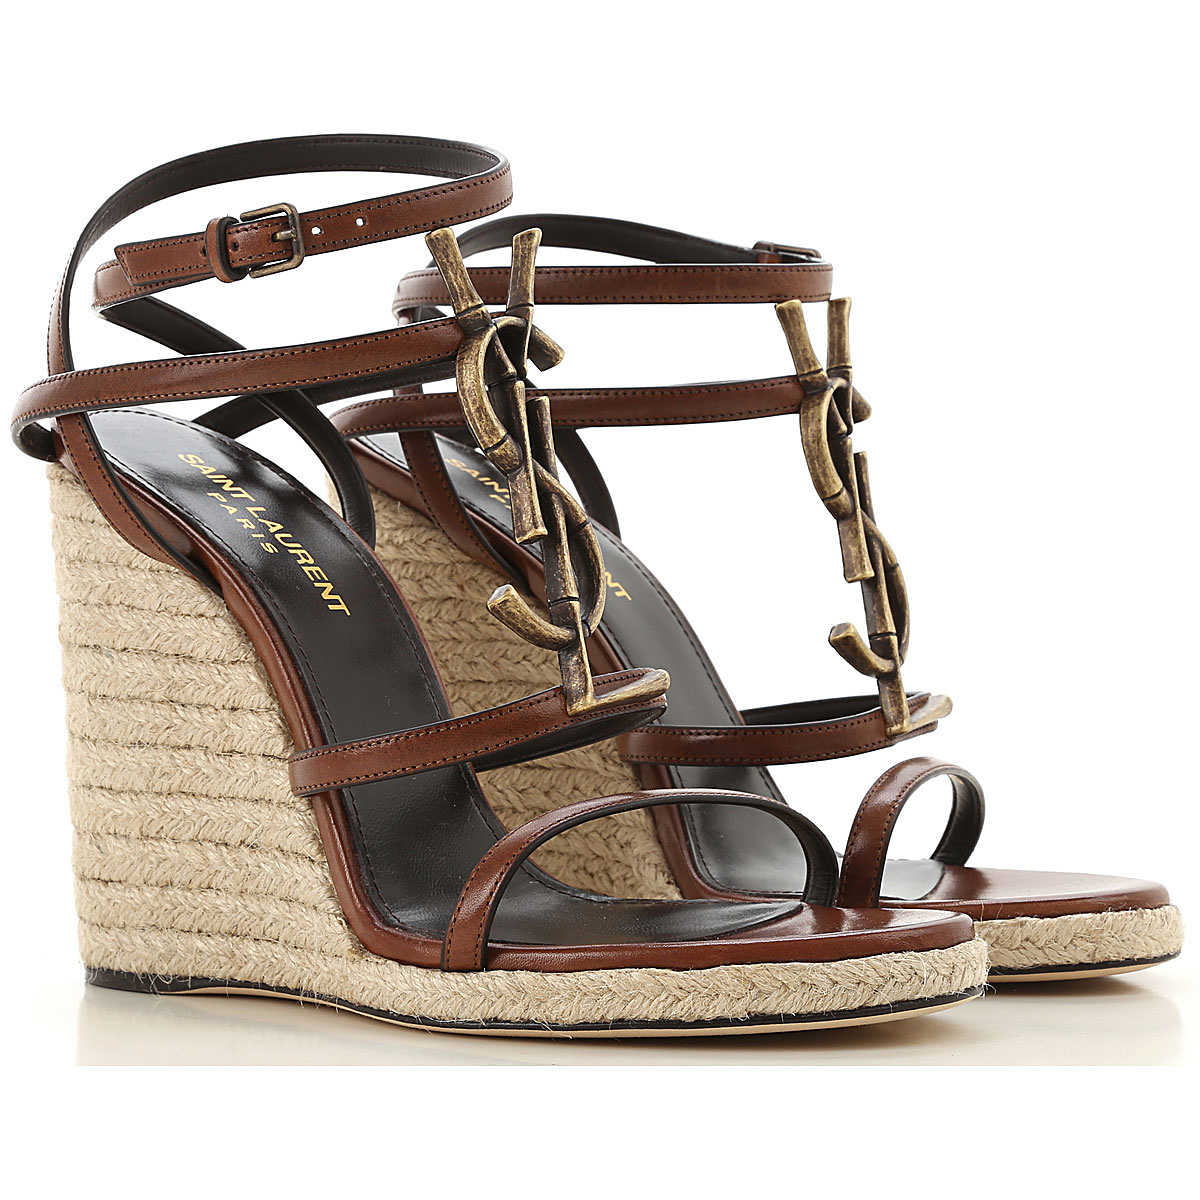 Yves Saint Laurent Wedges for Women Brown DK - GOOFASH - Womens HOUSE SHOES